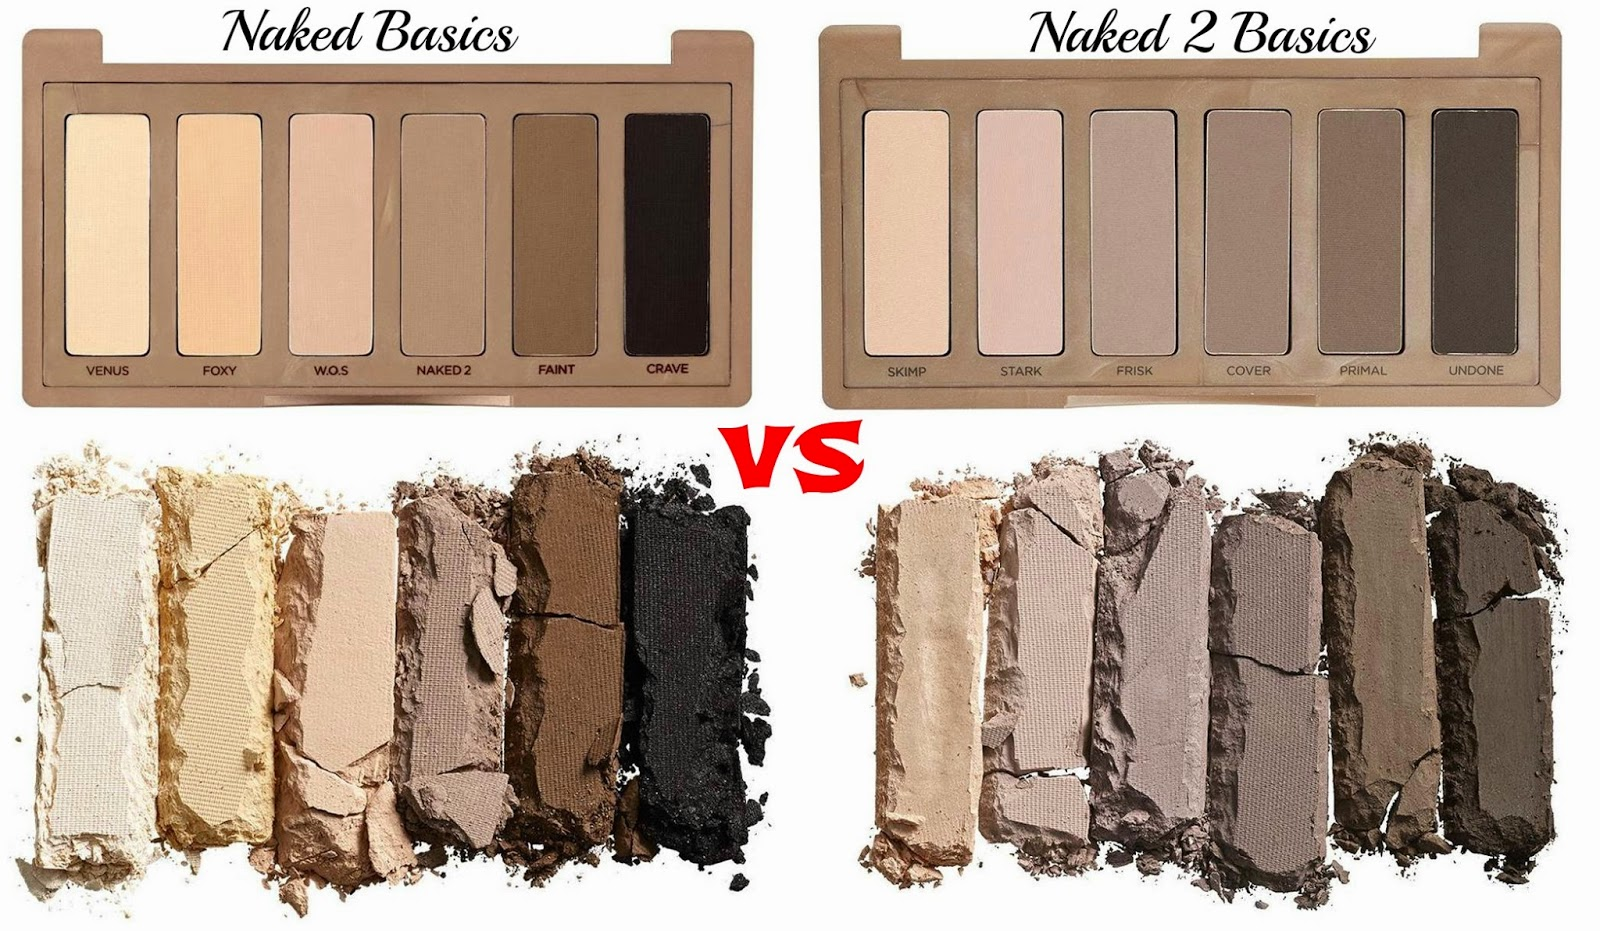 Naked Basics VS Naked Basics 2